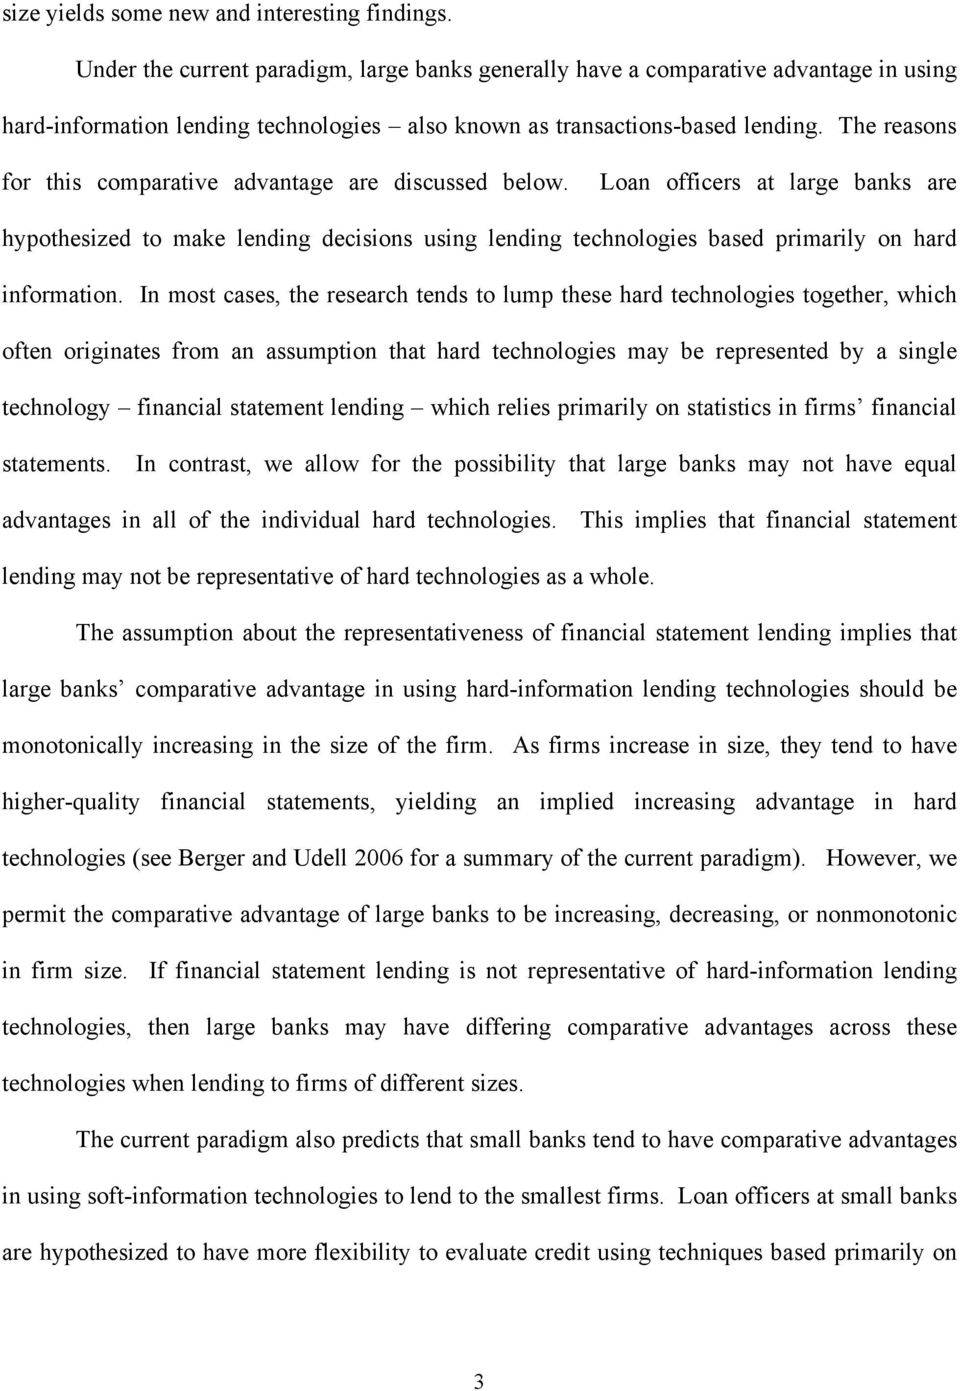 The reasons for this comparative advantage are discussed below. Loan officers at large banks are hypothesized to make lending decisions using lending technologies based primarily on hard information.